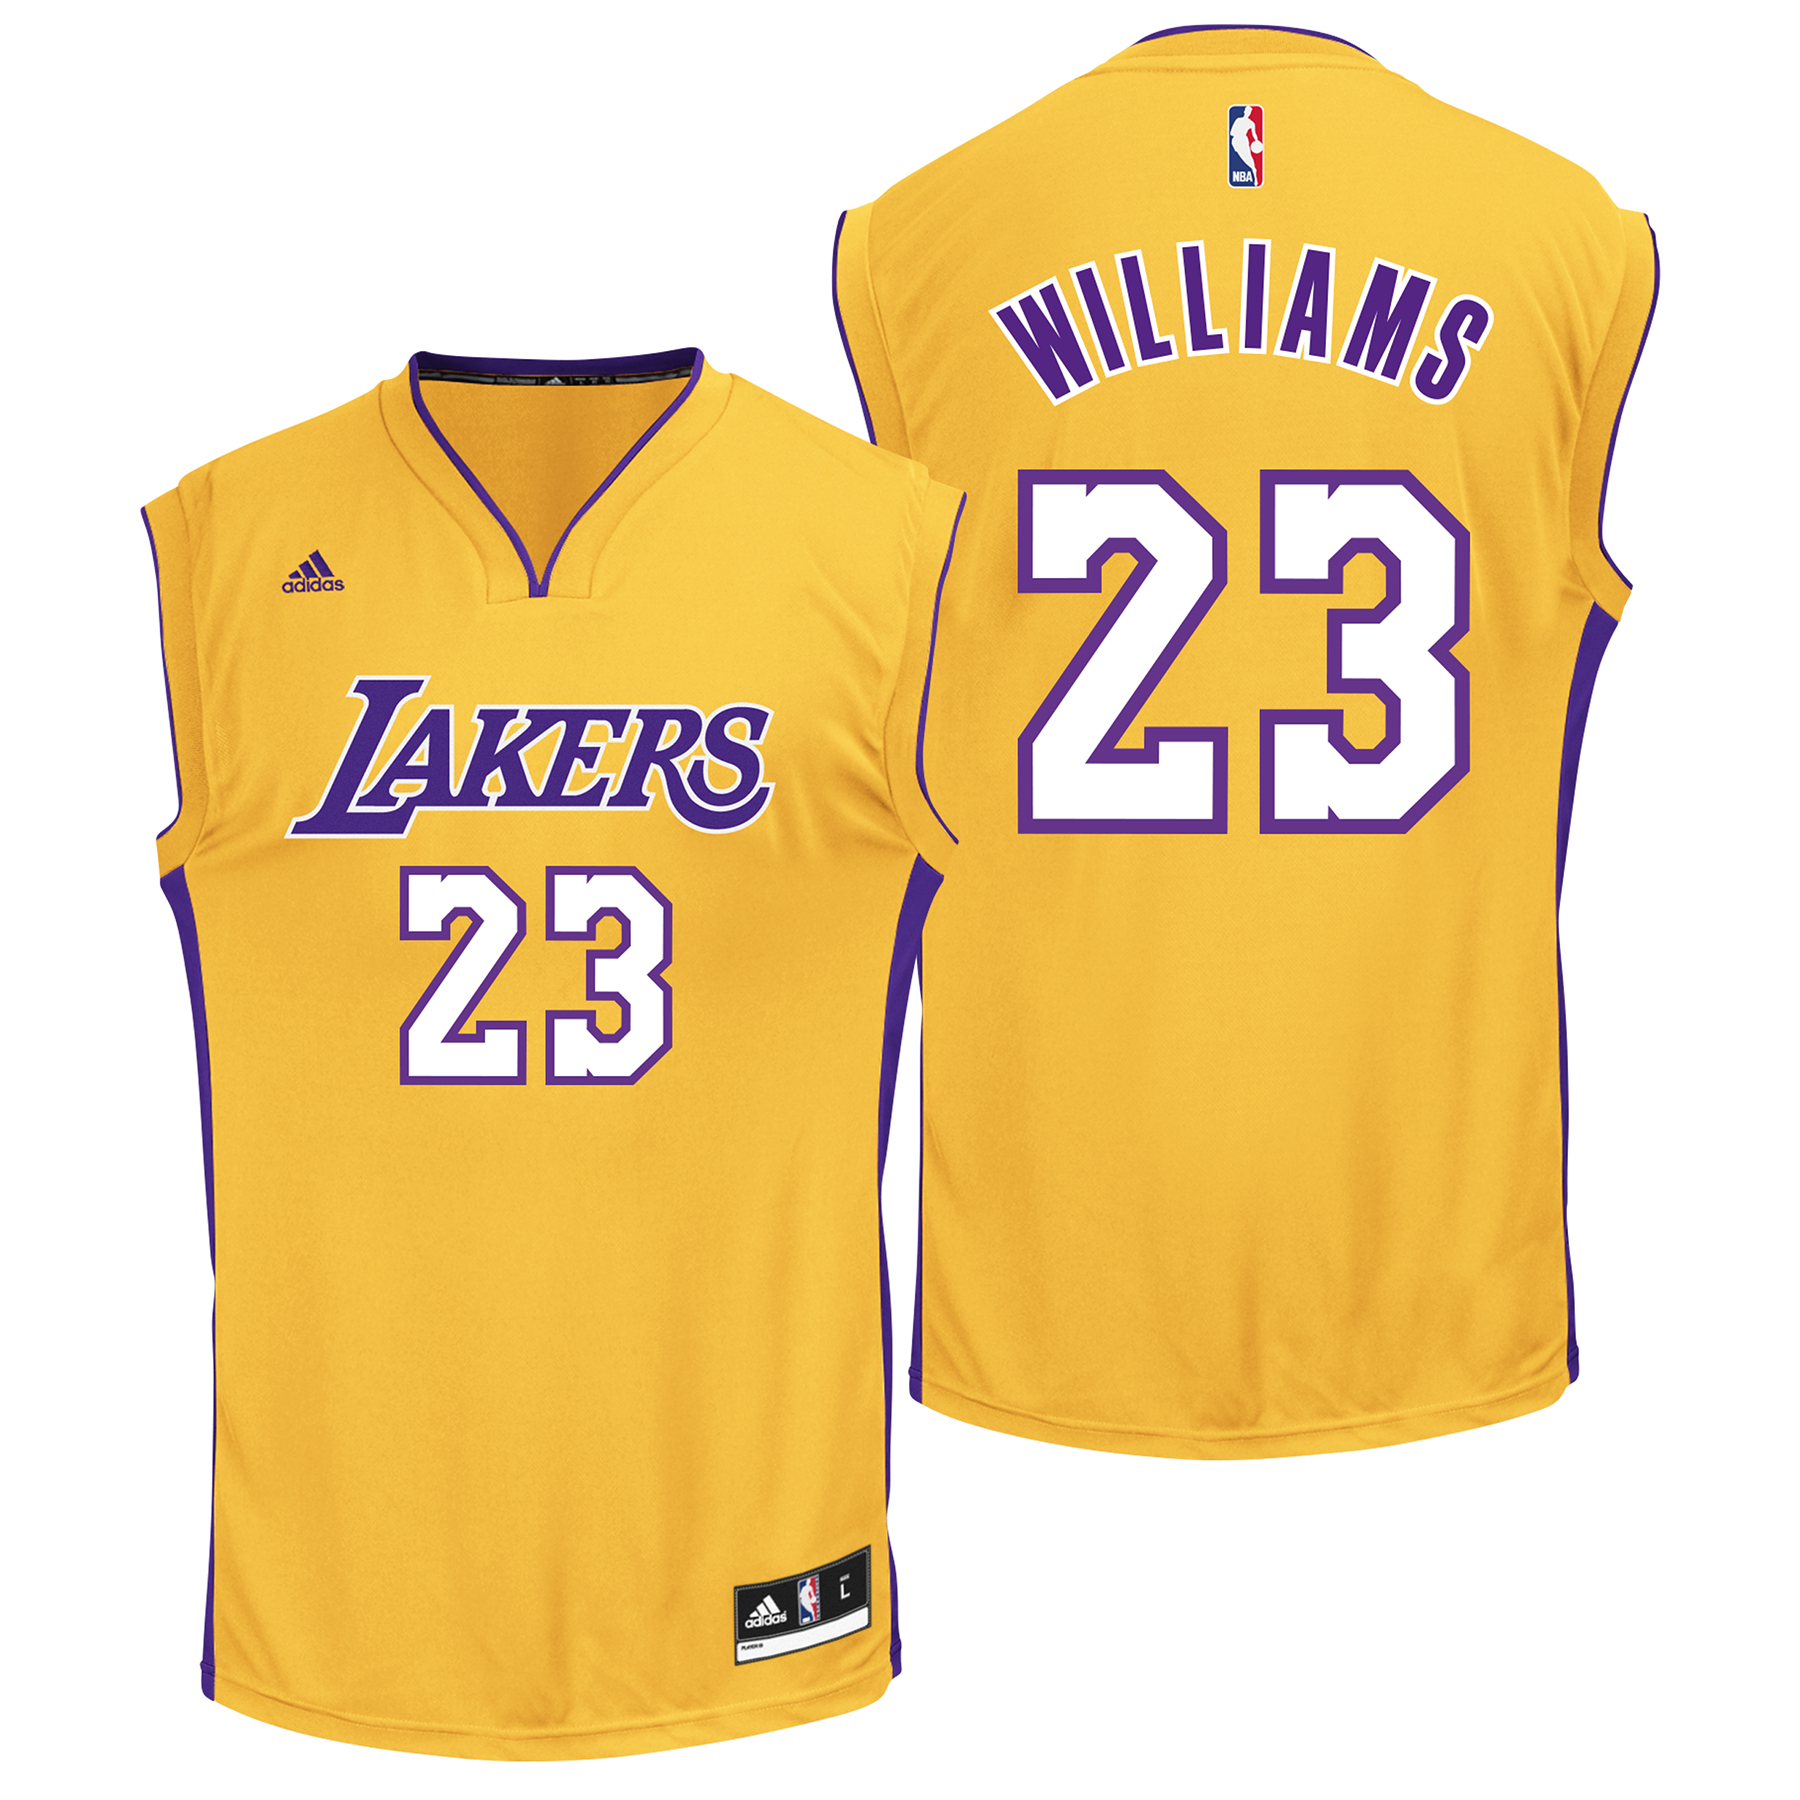 Los Angeles Lakers Home Replica Jersey - Louis Williams - Mens